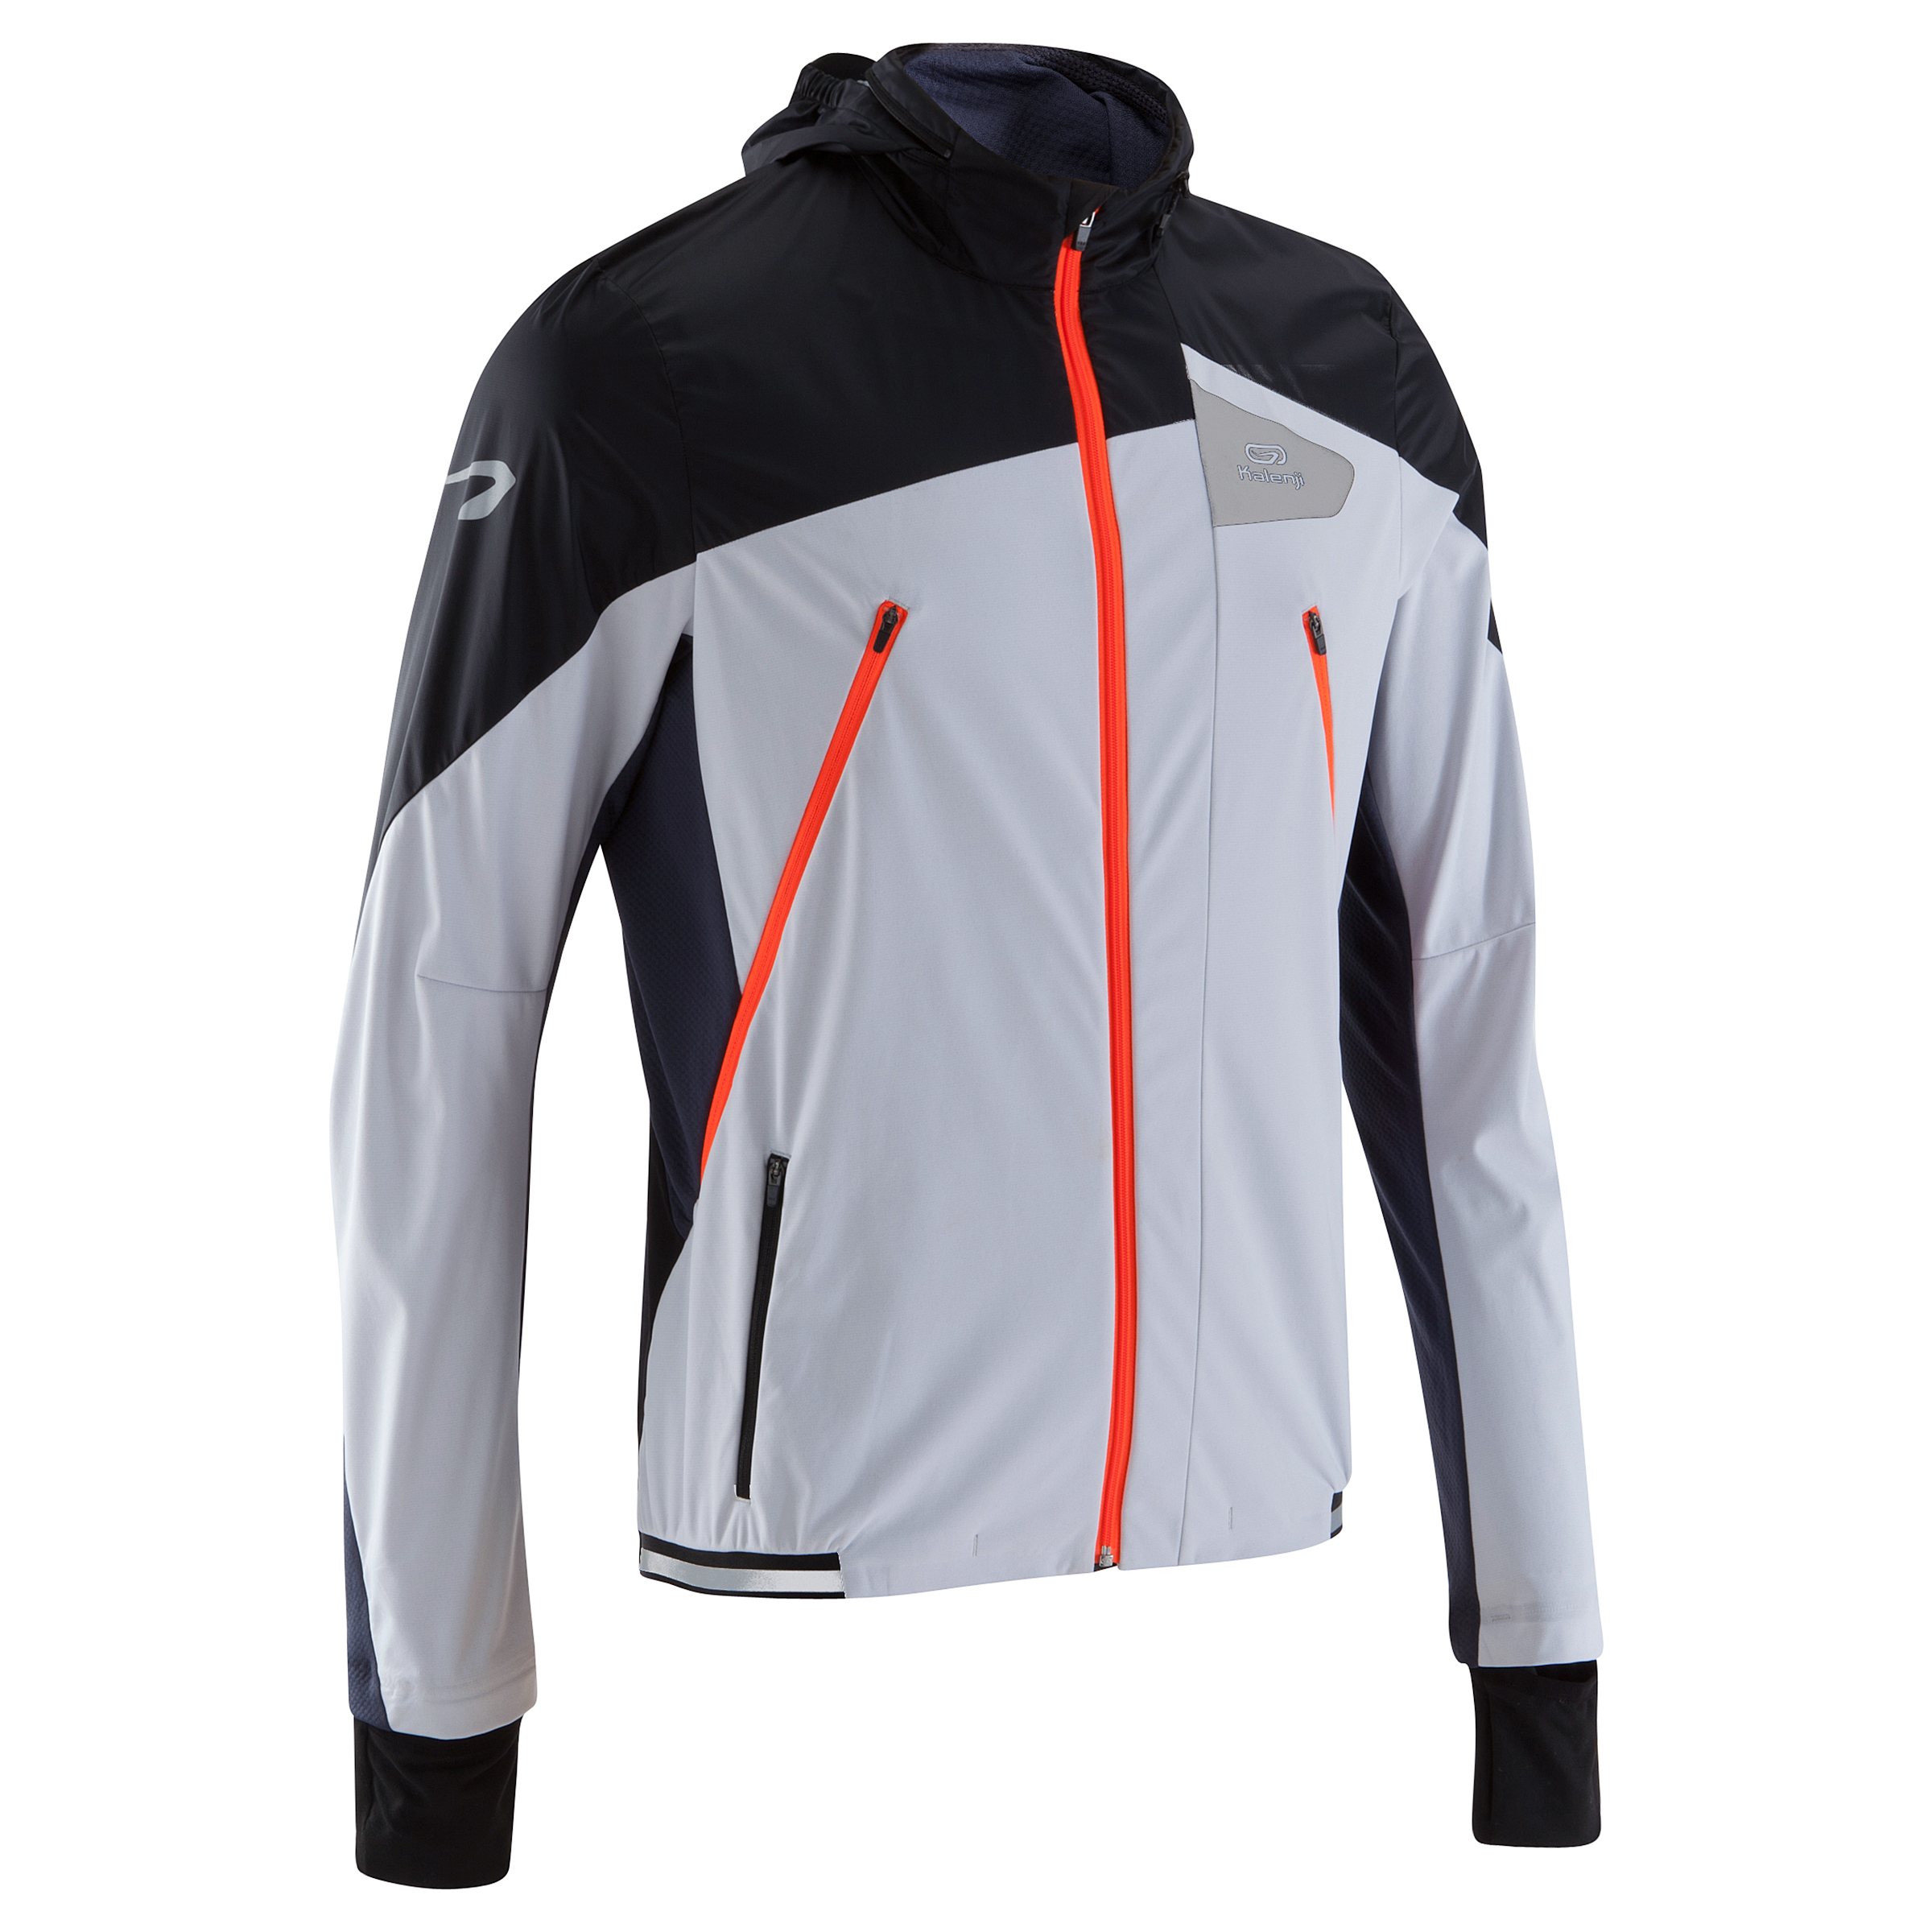 kiprun evol jacket white red[8367682]tci_pshot_001_1004567.jpg